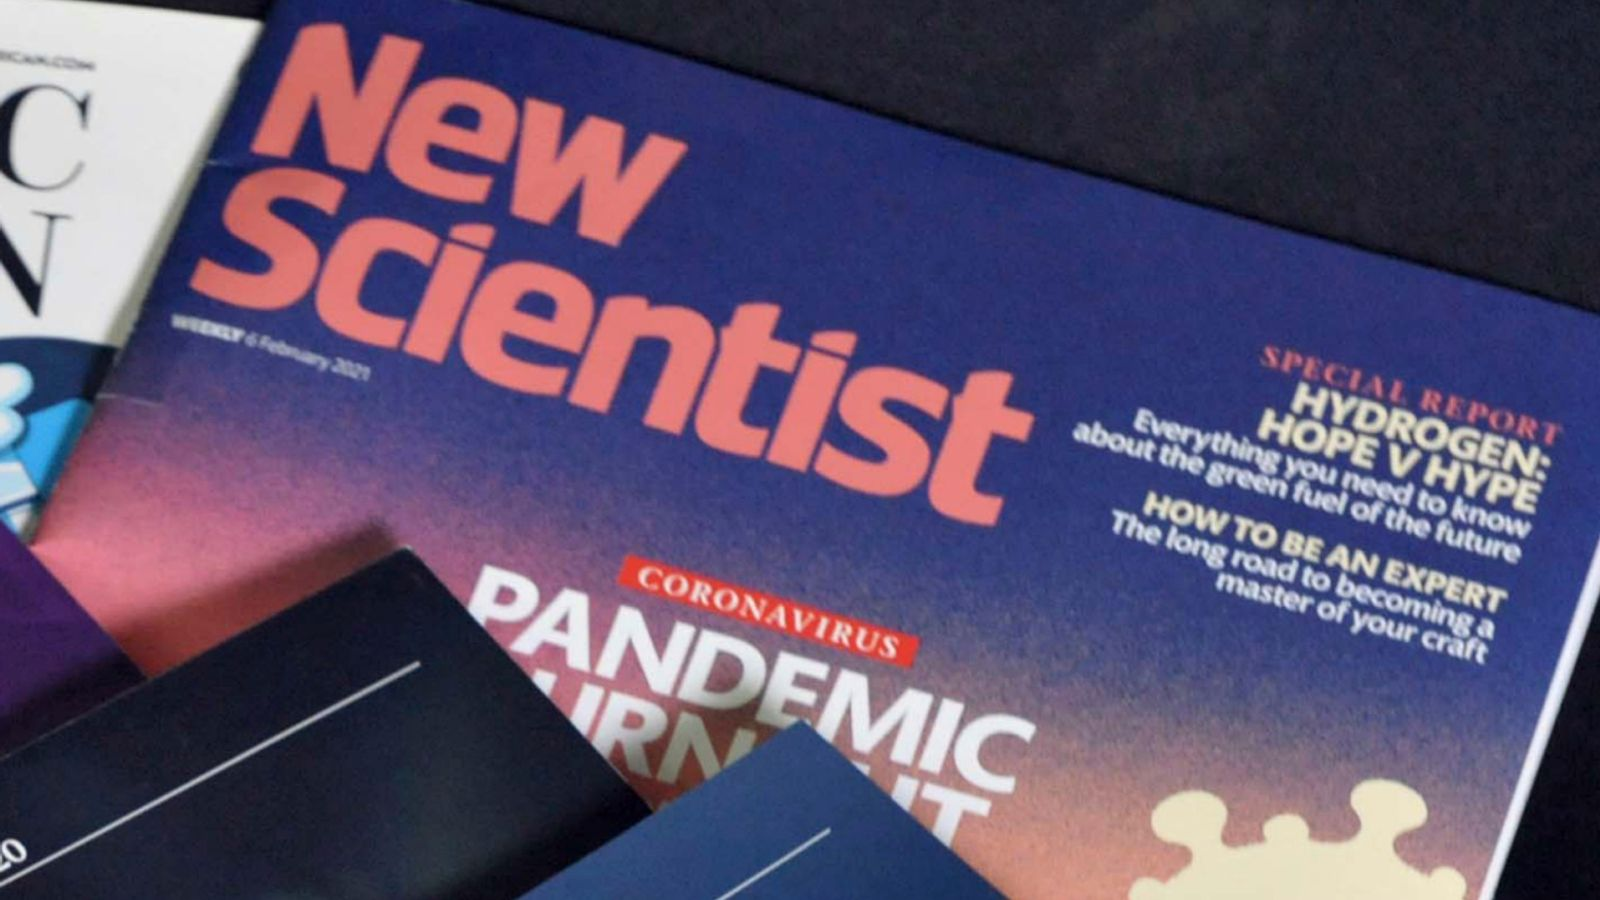 Each day Mail proprietor snaps up 'world-renowned' New Scientist journal in £70m deal